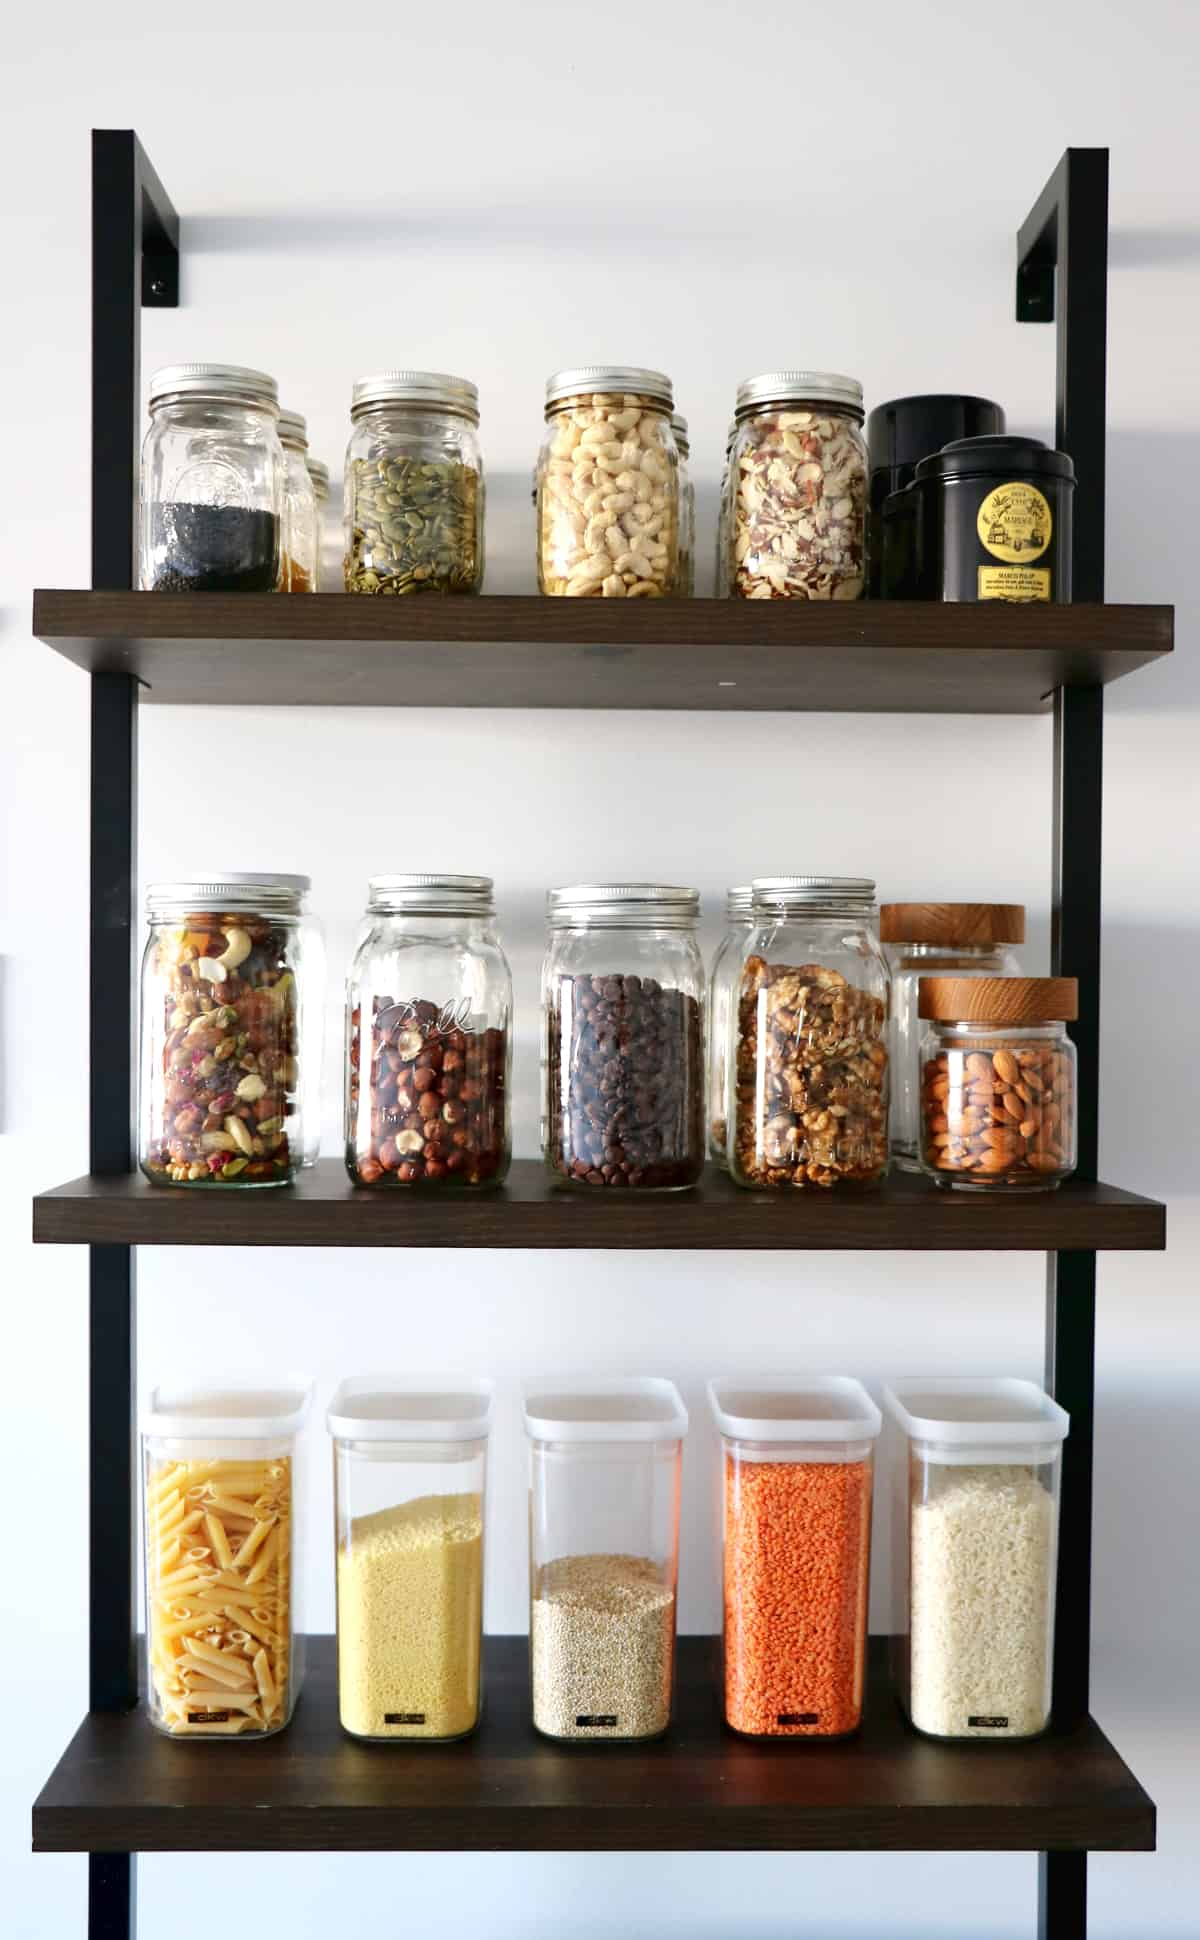 These easy vegetarian pantry recipes are perfect for feeding the whole family or for meal prepping during busy weeks.